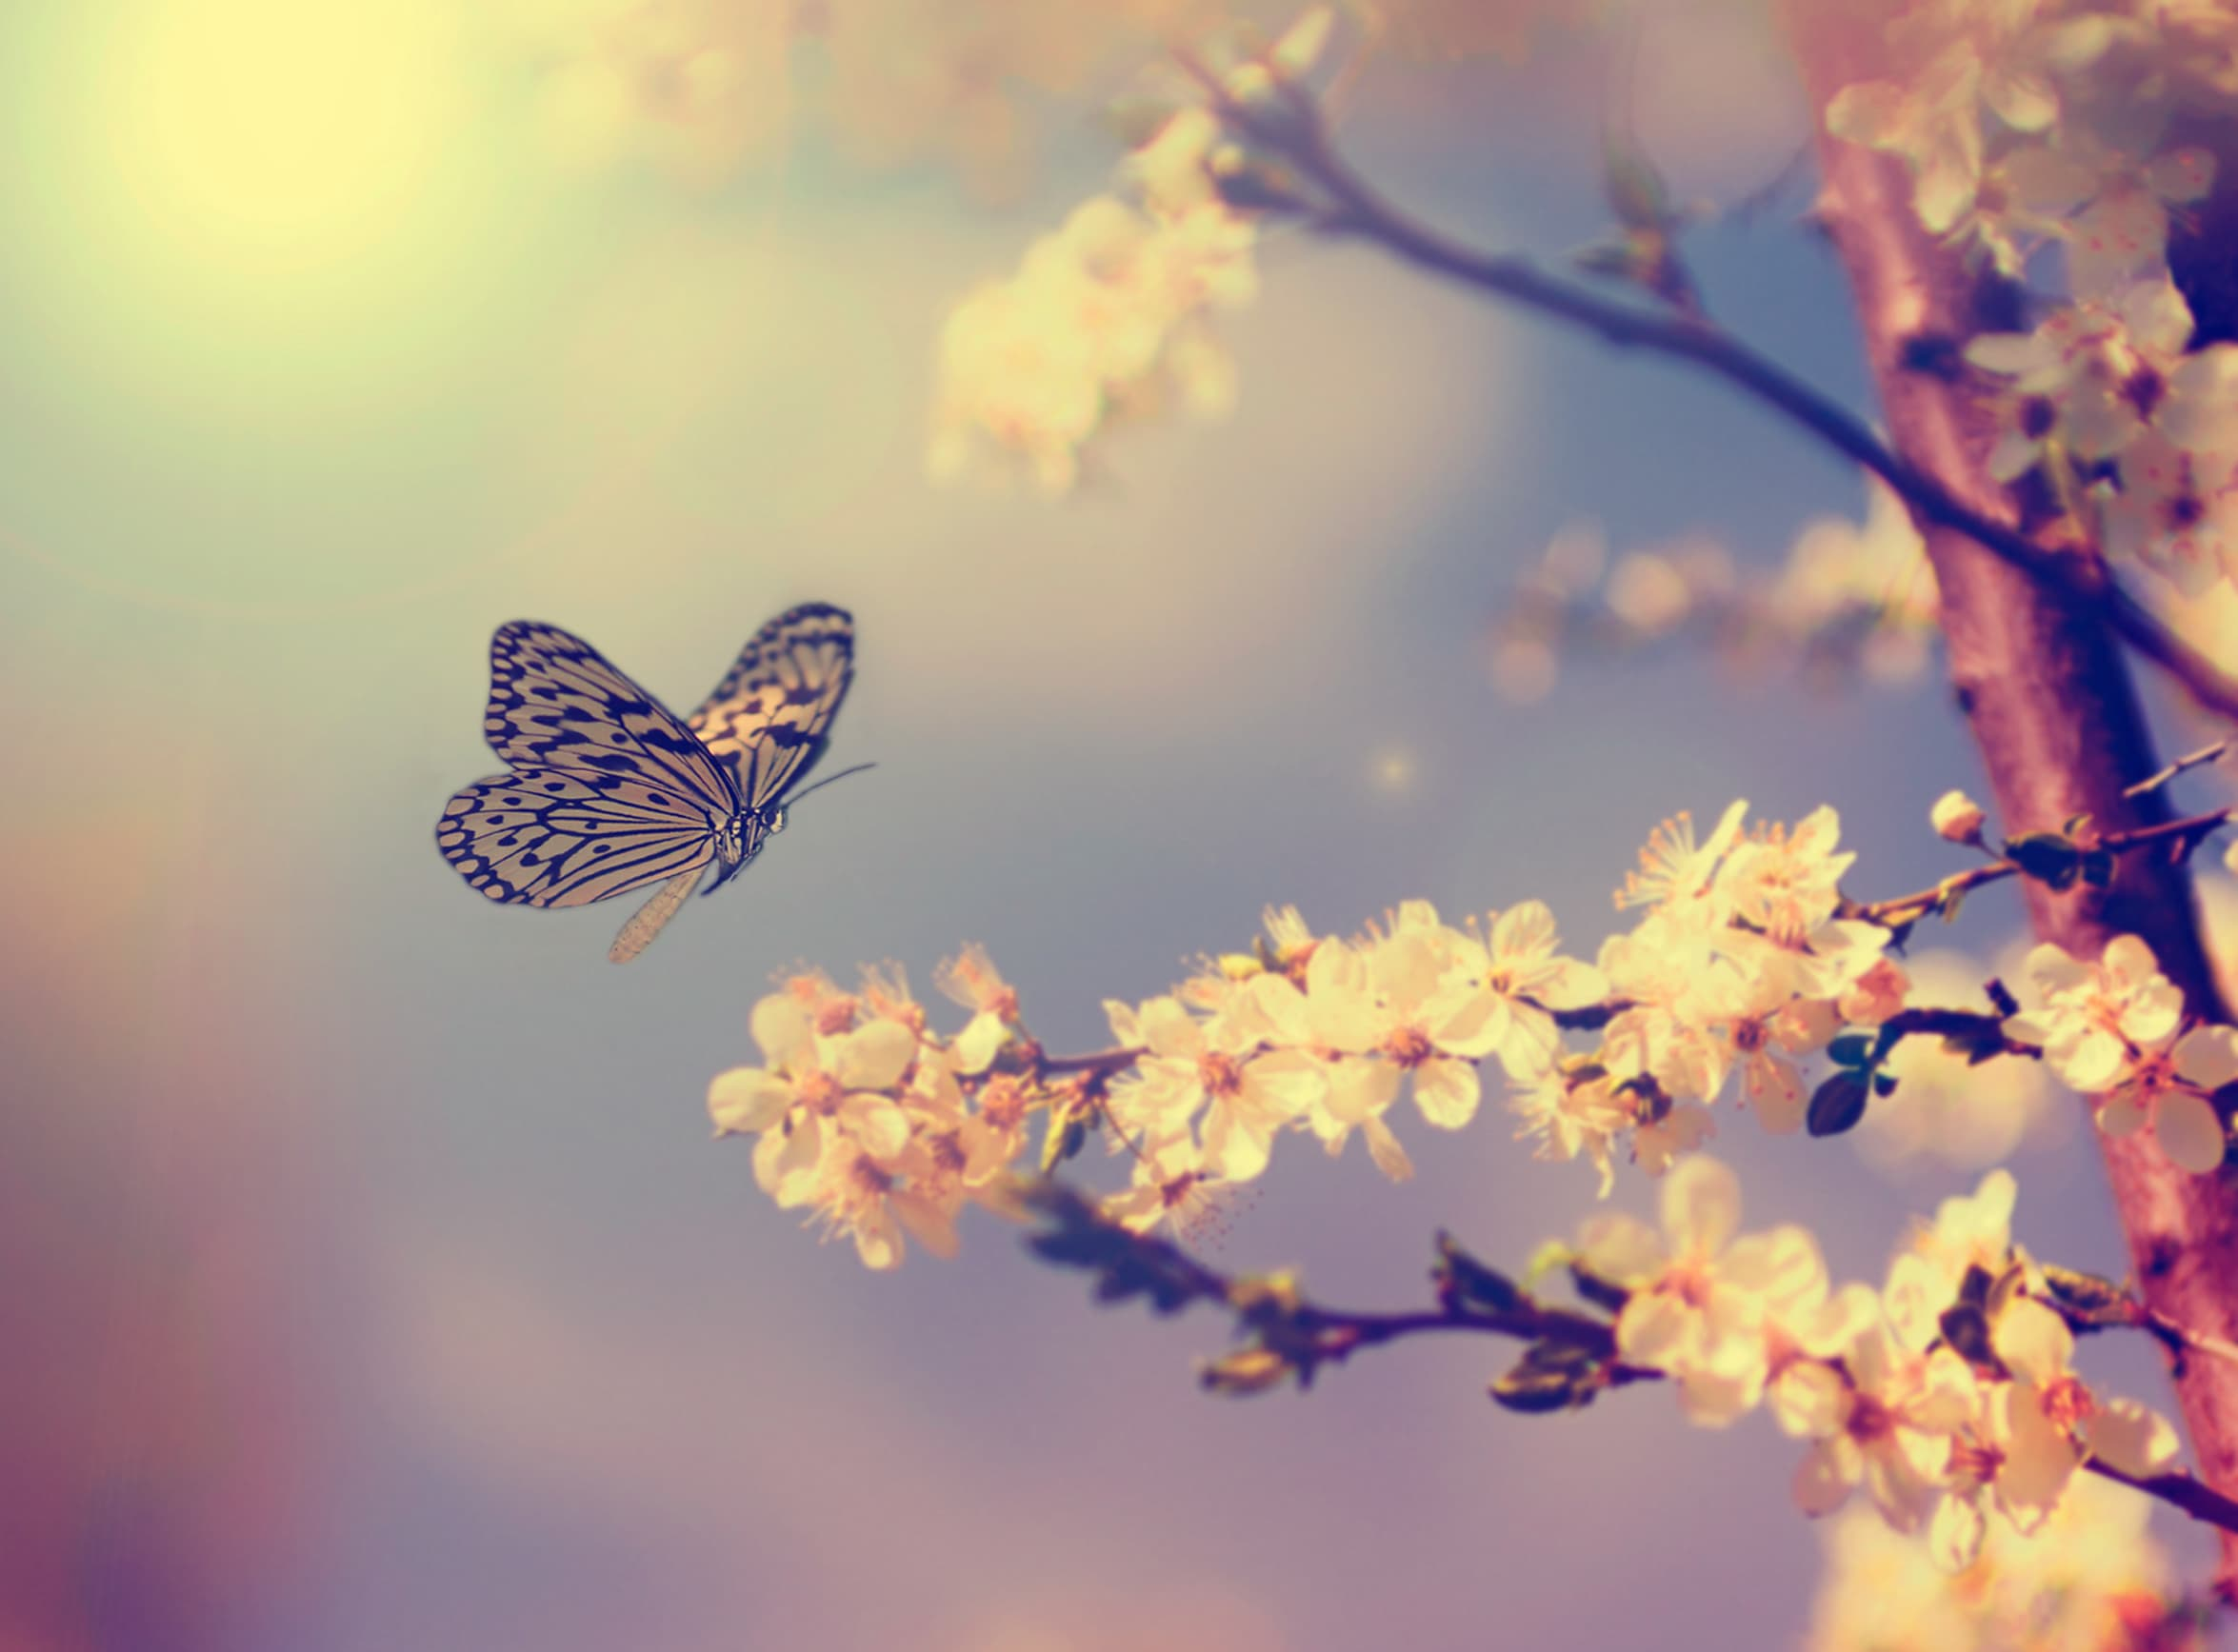 Butterfly and cherry blossom